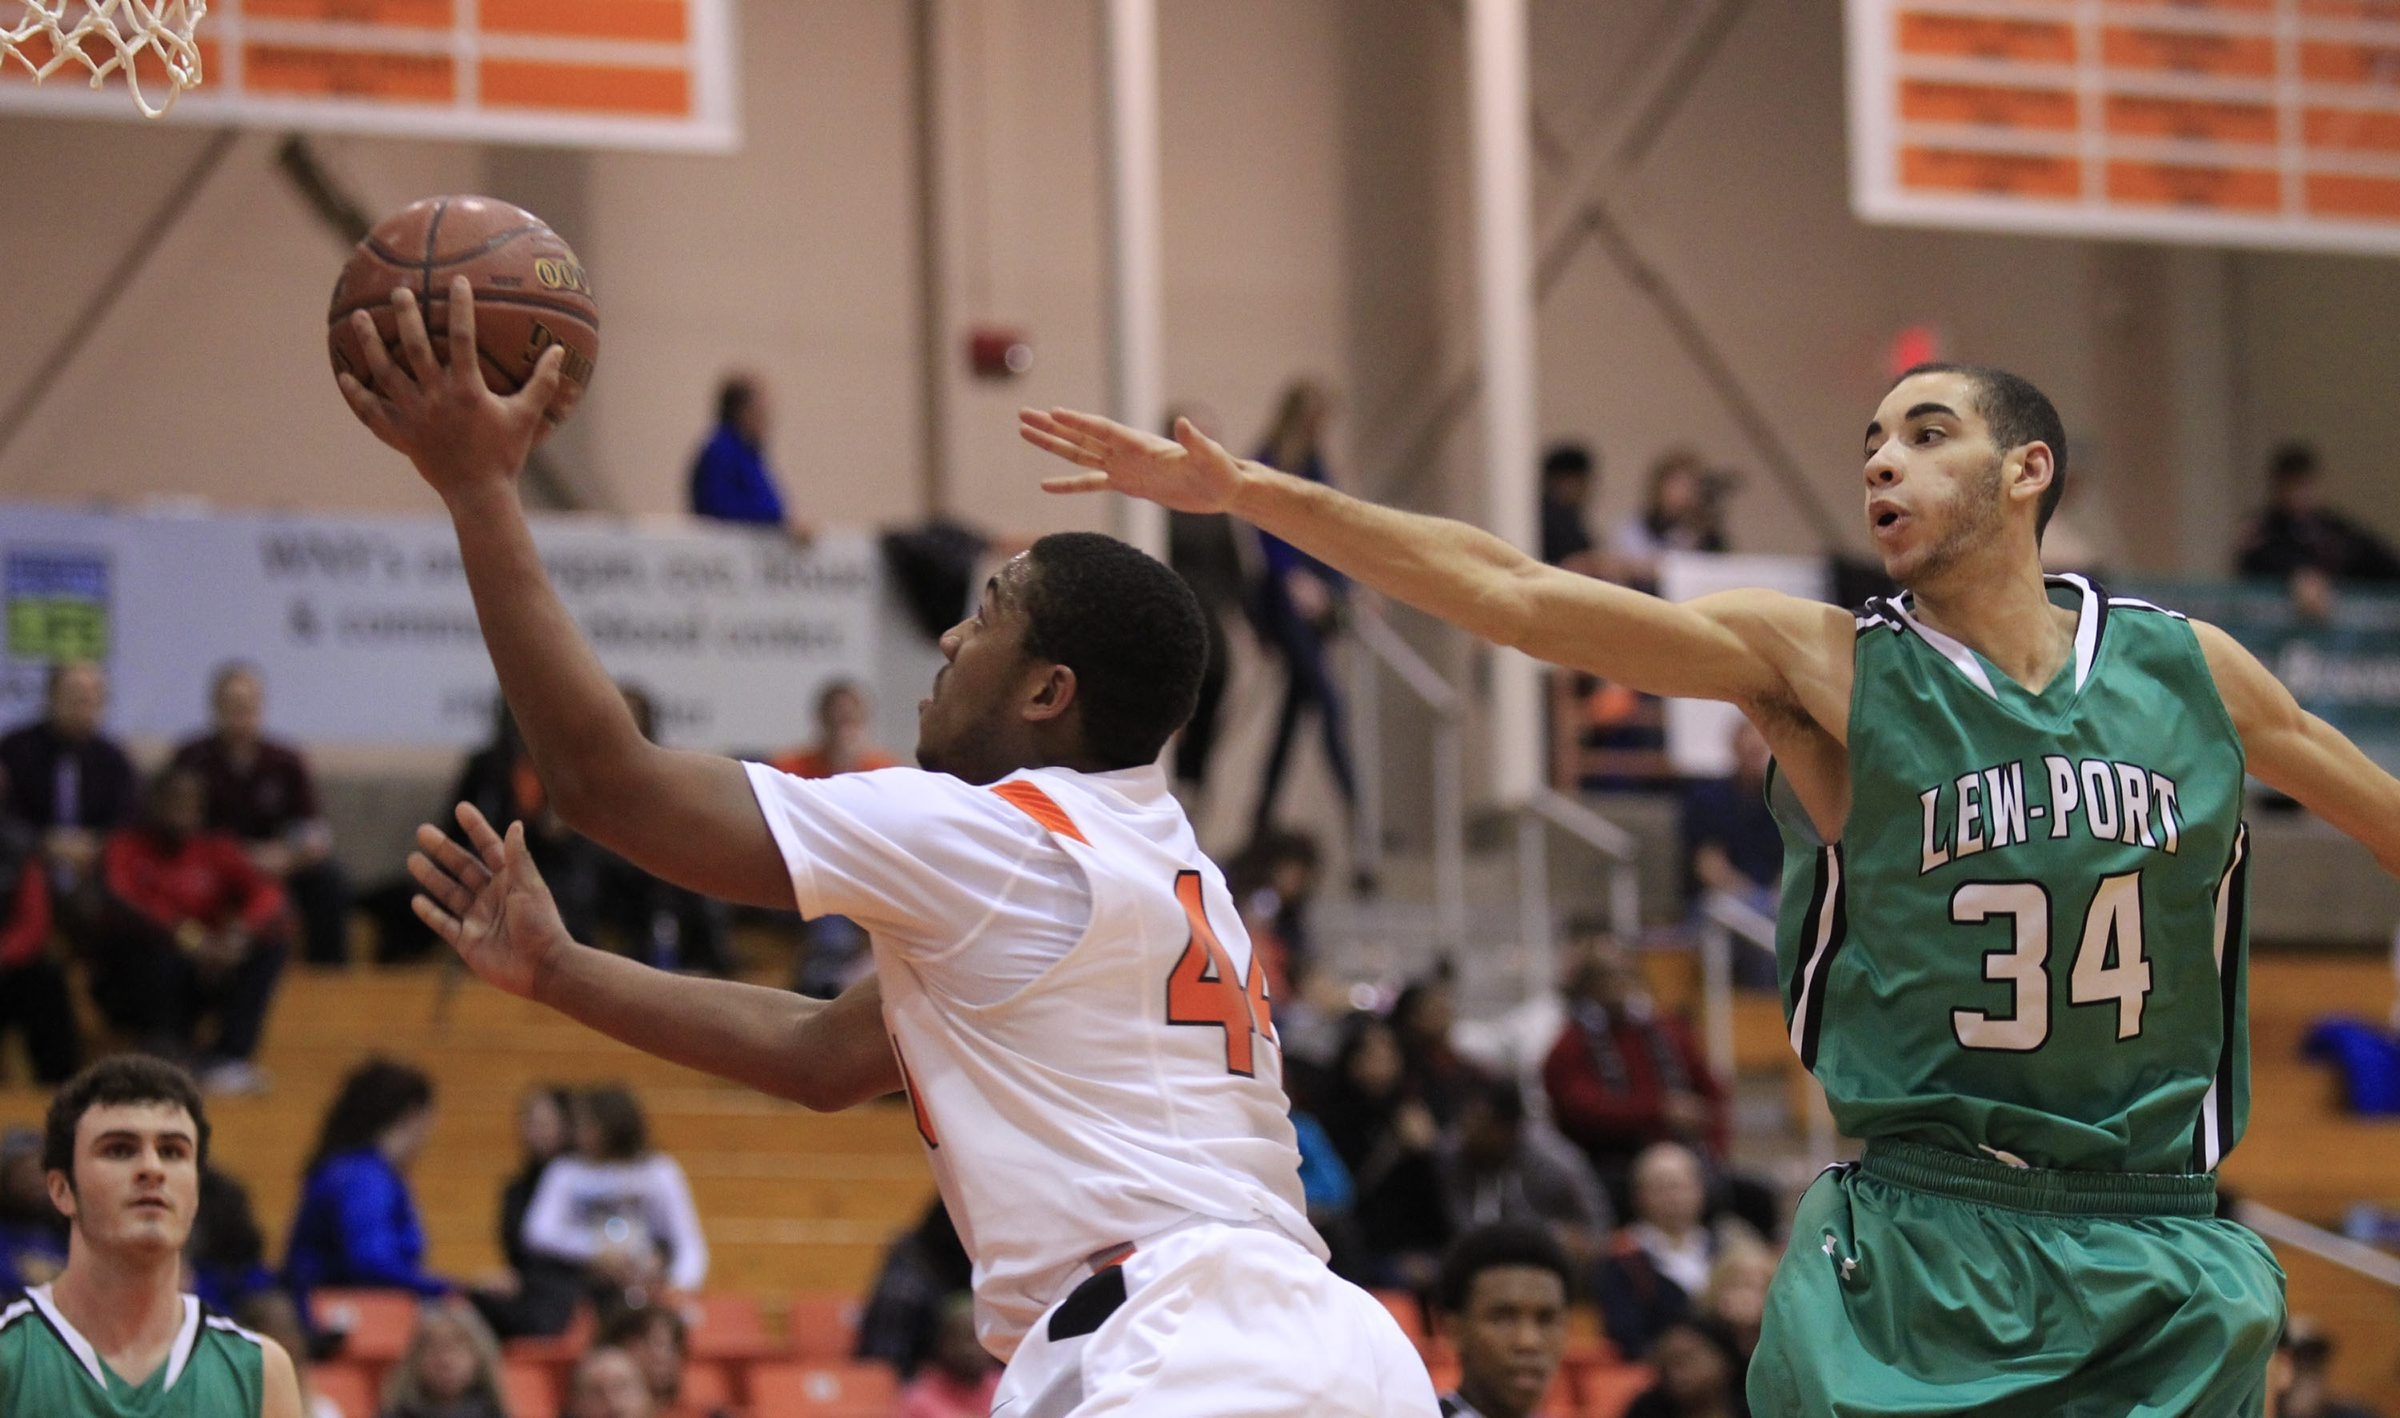 Darian Lowe of Amherst drives past Tyler Dietz of Lewiston-Porter during the Tigers' 51-49 victory.